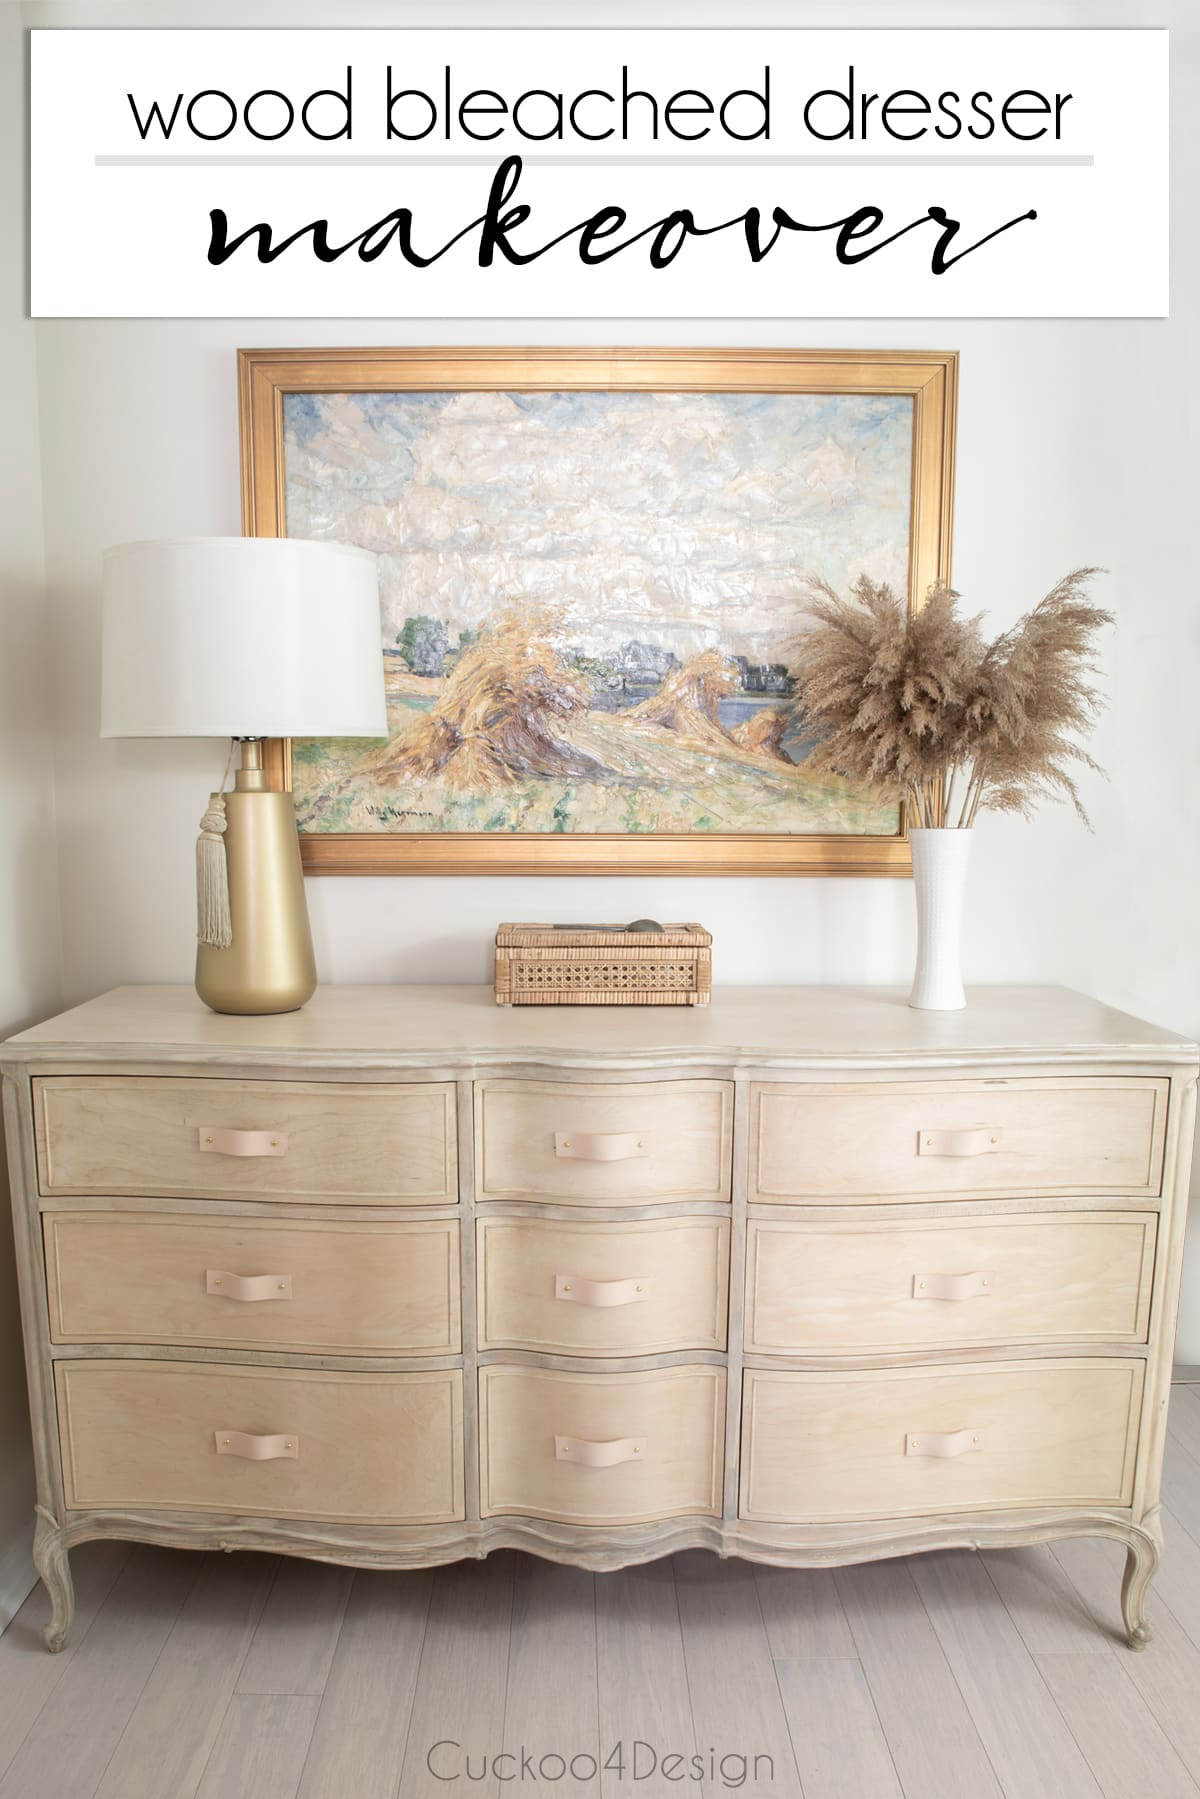 wood bleach dresser makeover using two-parts wood bleaching kit